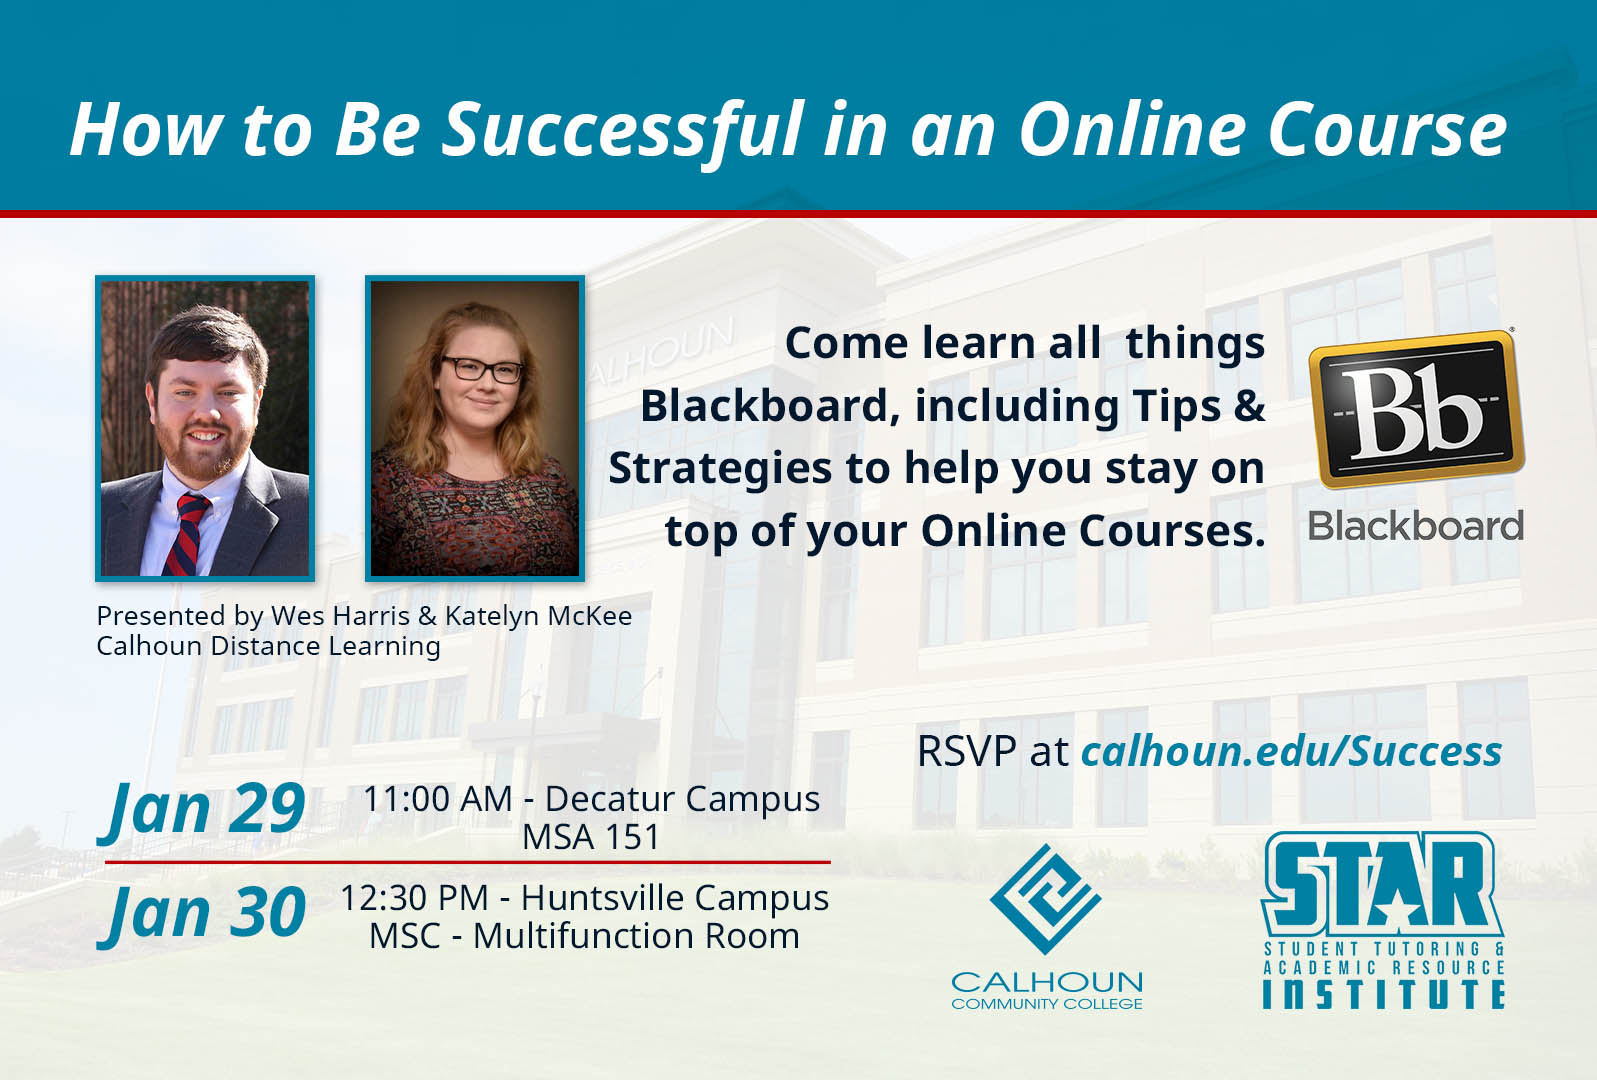 How to be successful in an online course - Come learn all things Blackboard, including Tips & Strategies to help you stay on top of your online courses. Jan 29, 11 AM Decatur Campus, MSA 151. Jan 30 - 12:30 PM Huntsville Campus MSCIS Multifunction Room